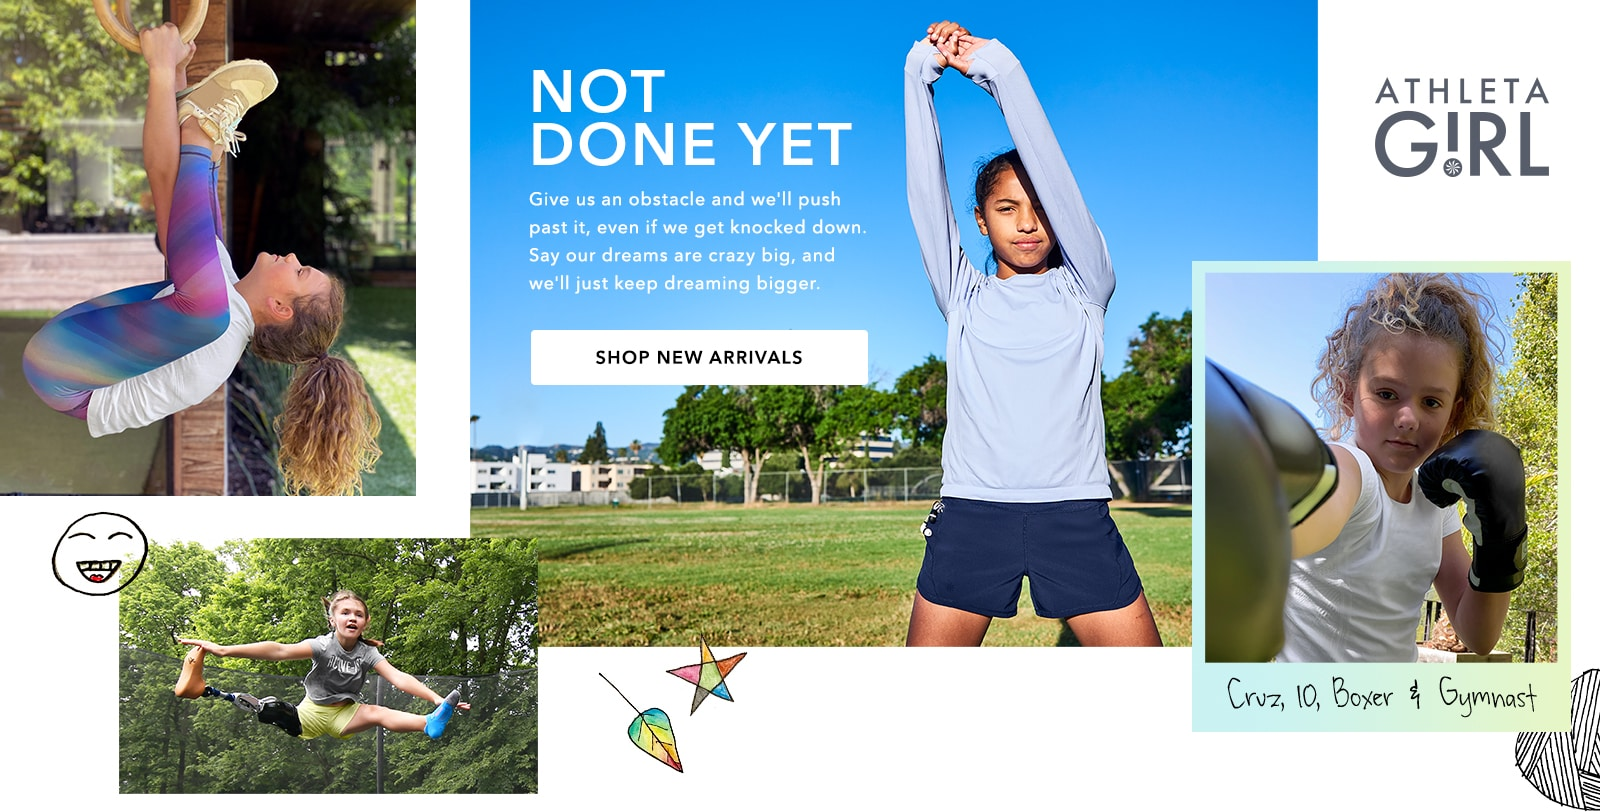 girl athletes in athleta wear